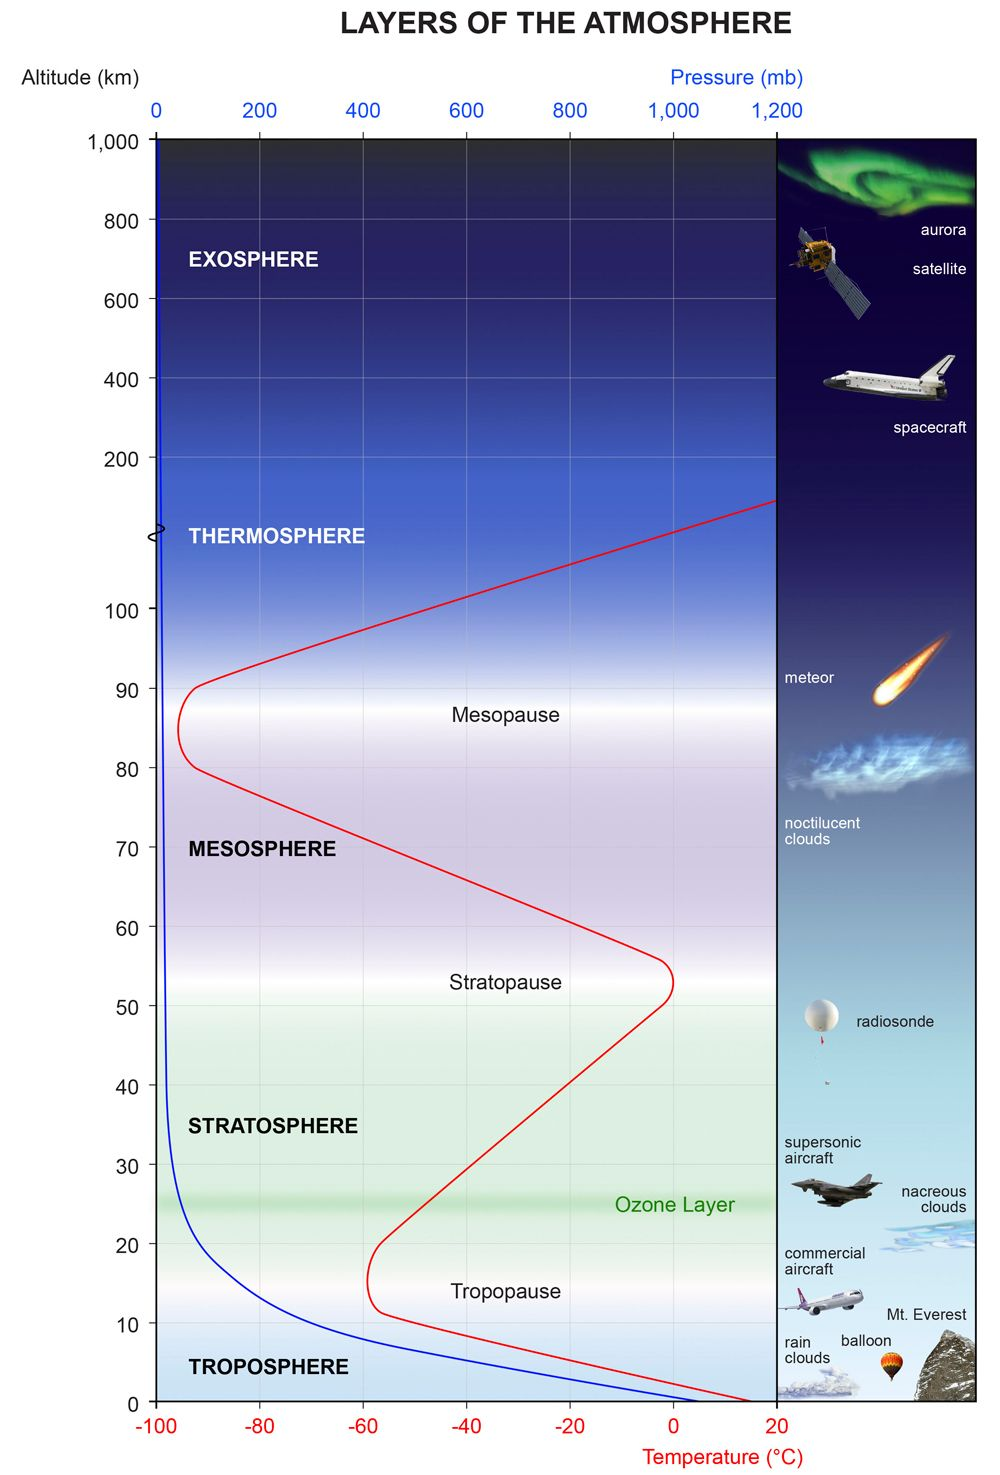 medium resolution of diagram showing layers of the atmosphere